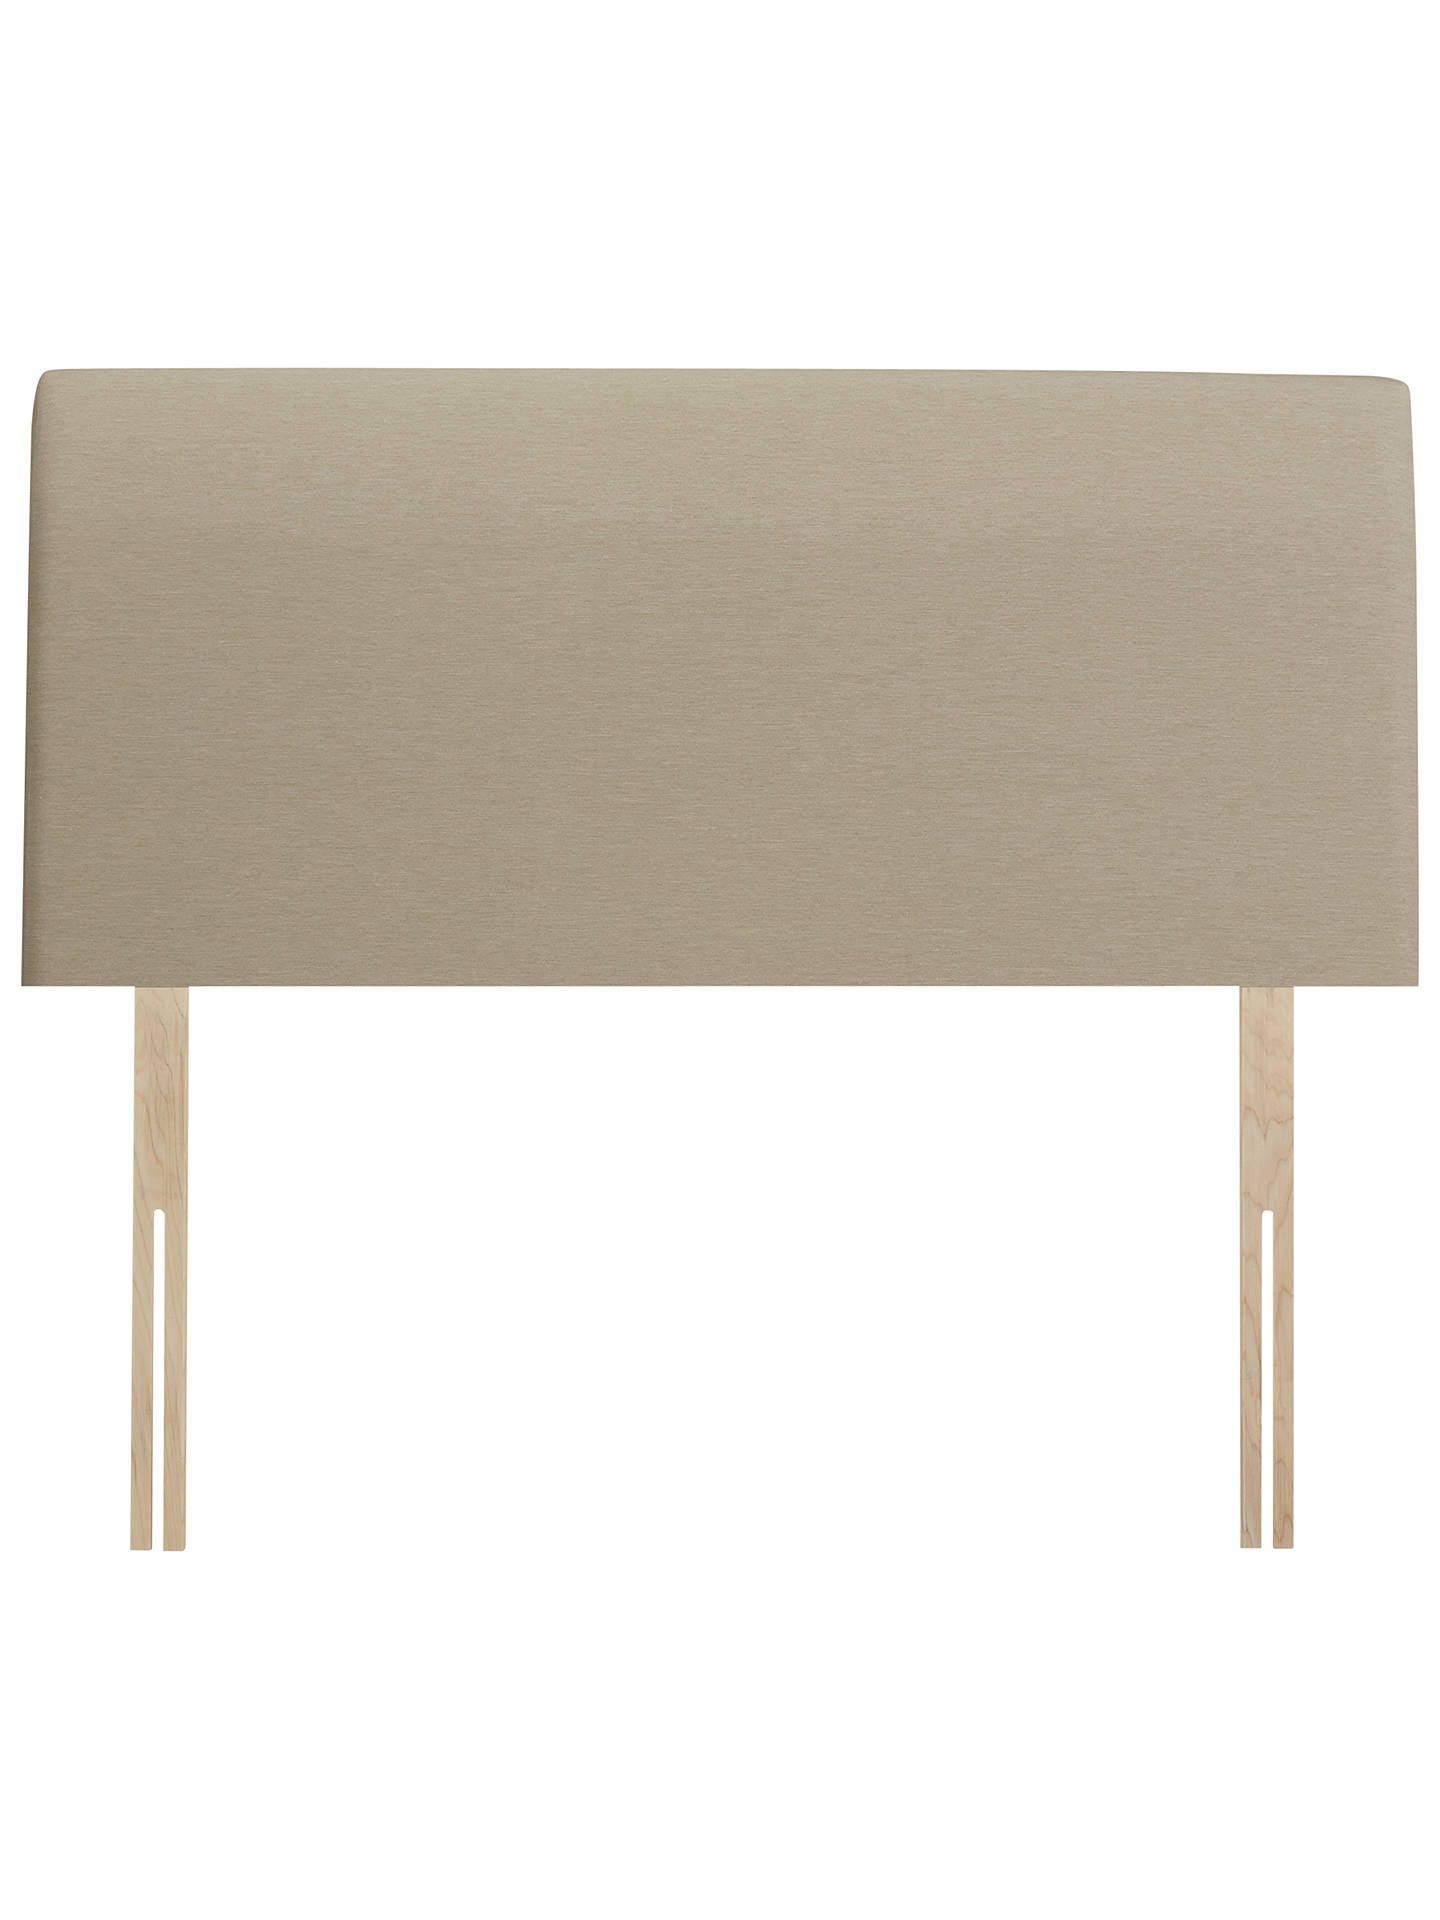 Buy John Lewis & Partners Natural Collection Bedford Strut Headboard, Pebble, Single Online at johnlewis.com